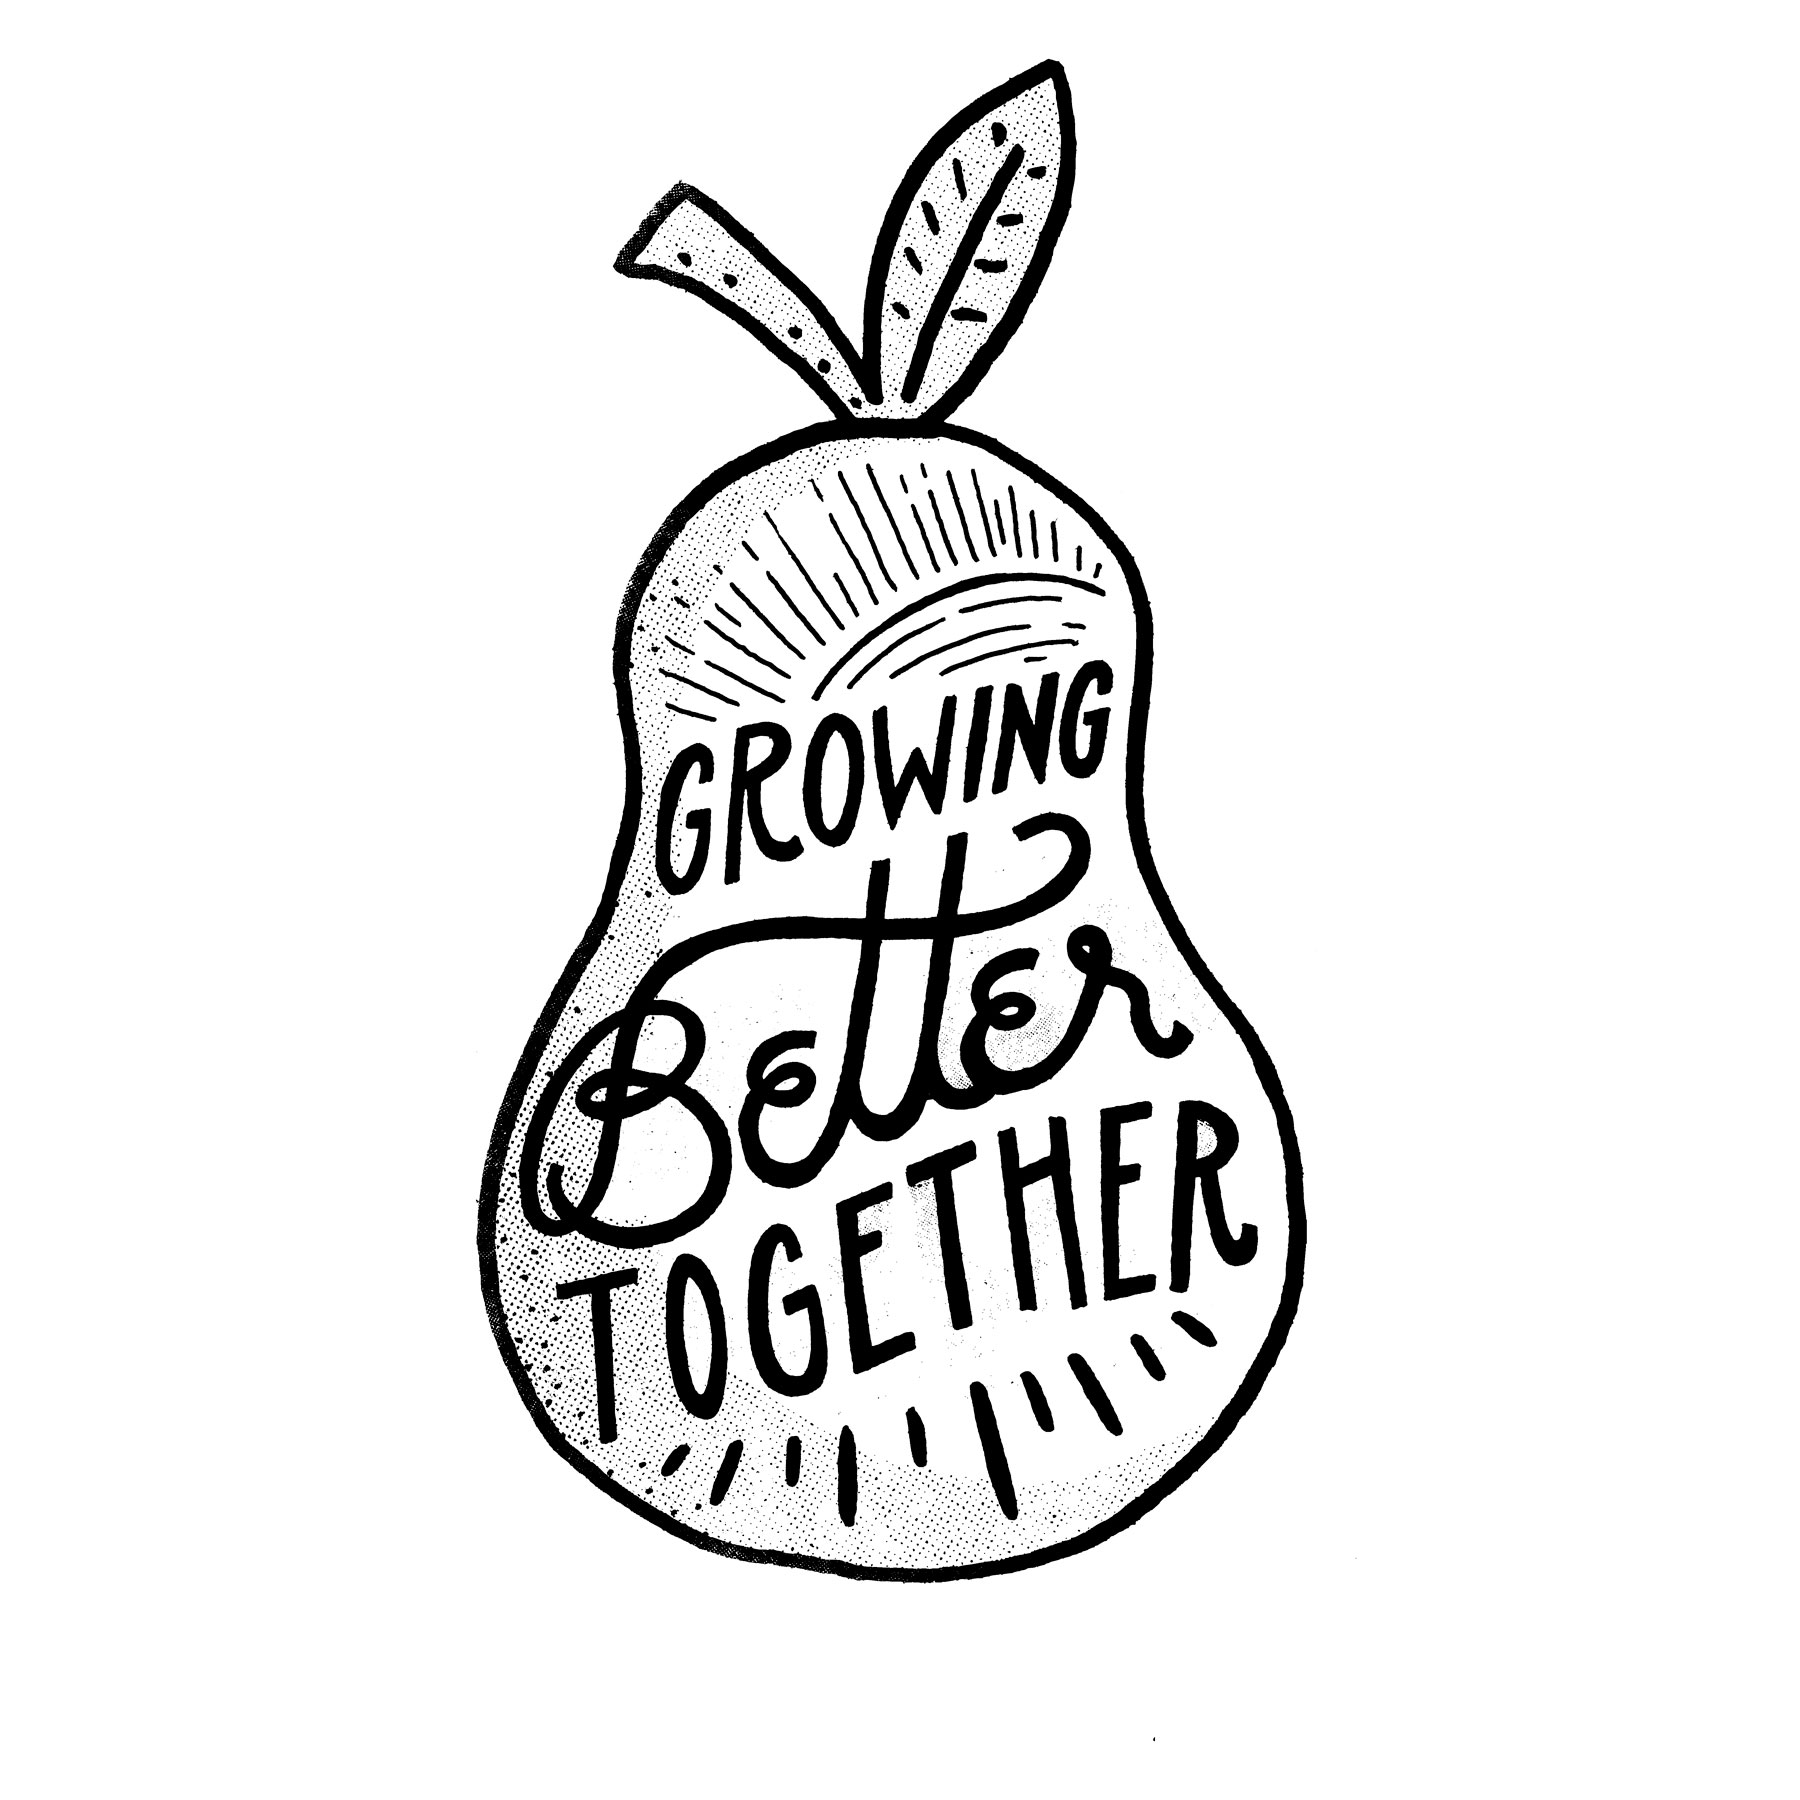 GrowingBetterTogether-WhitePear.jpg